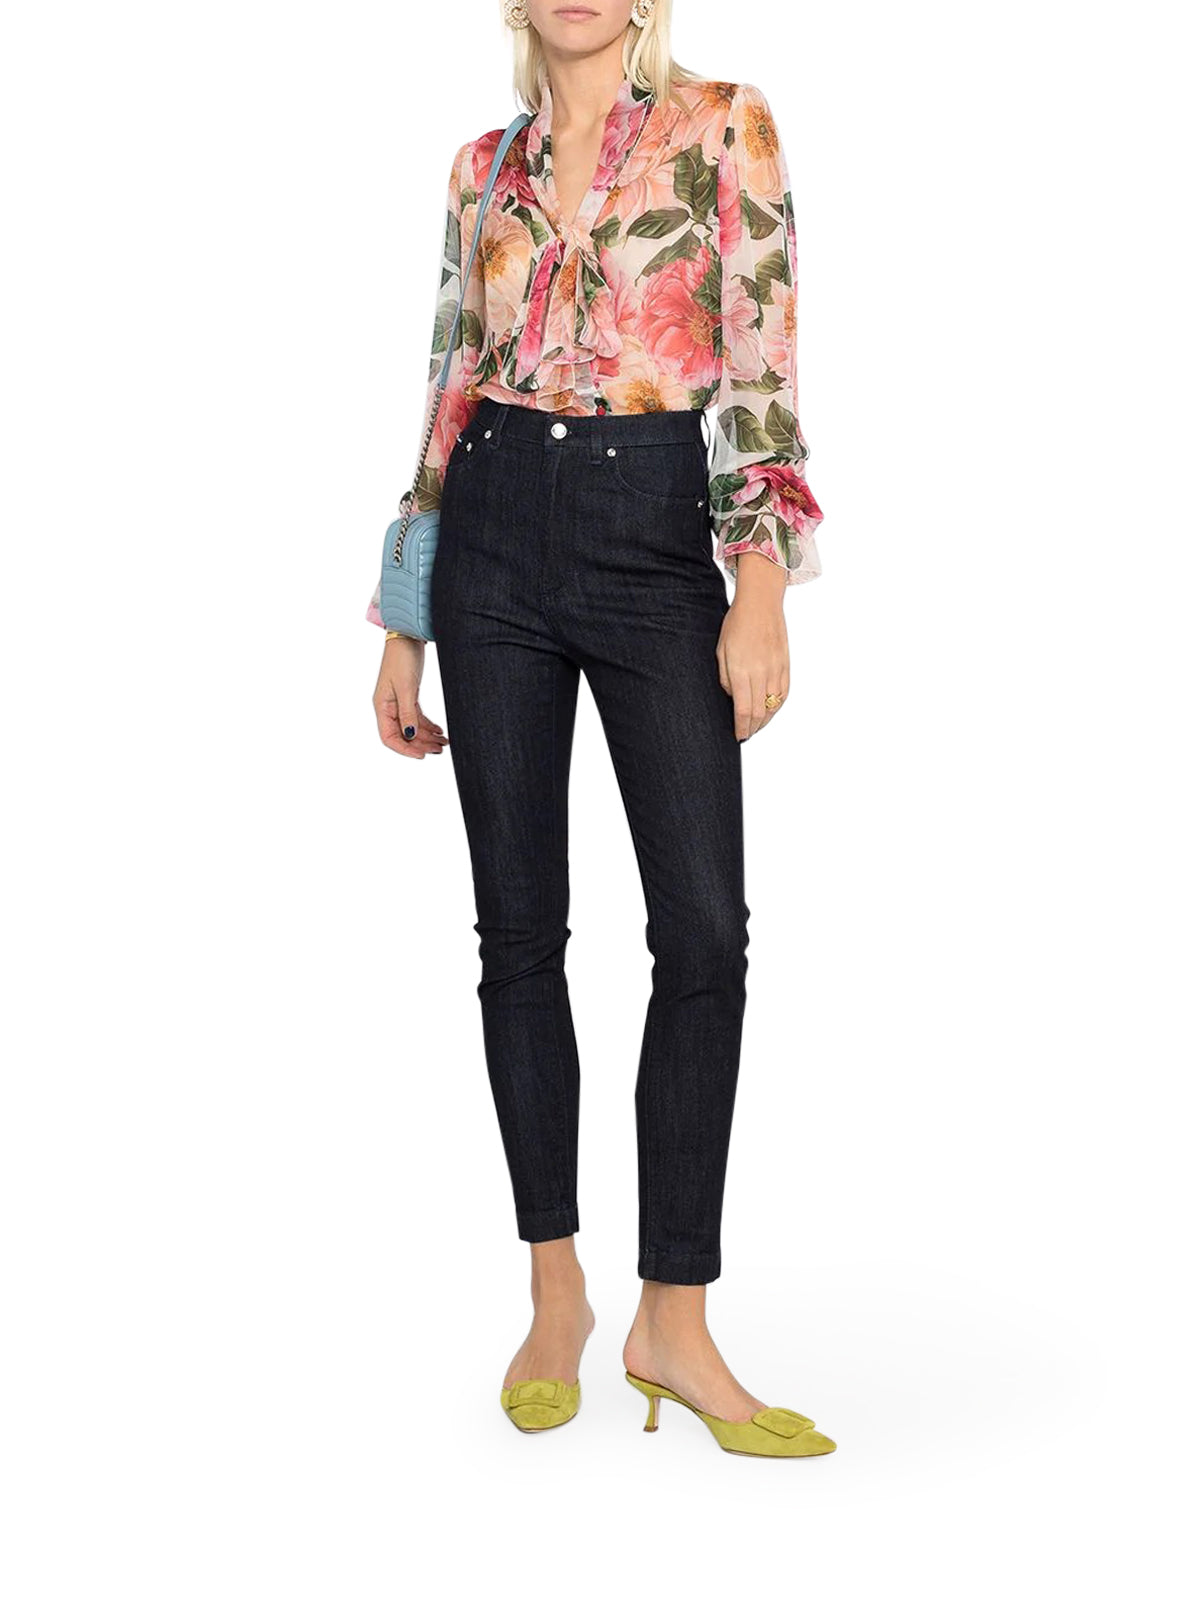 DOLCE & GABBANA BLOUSE WITH FLOWERS